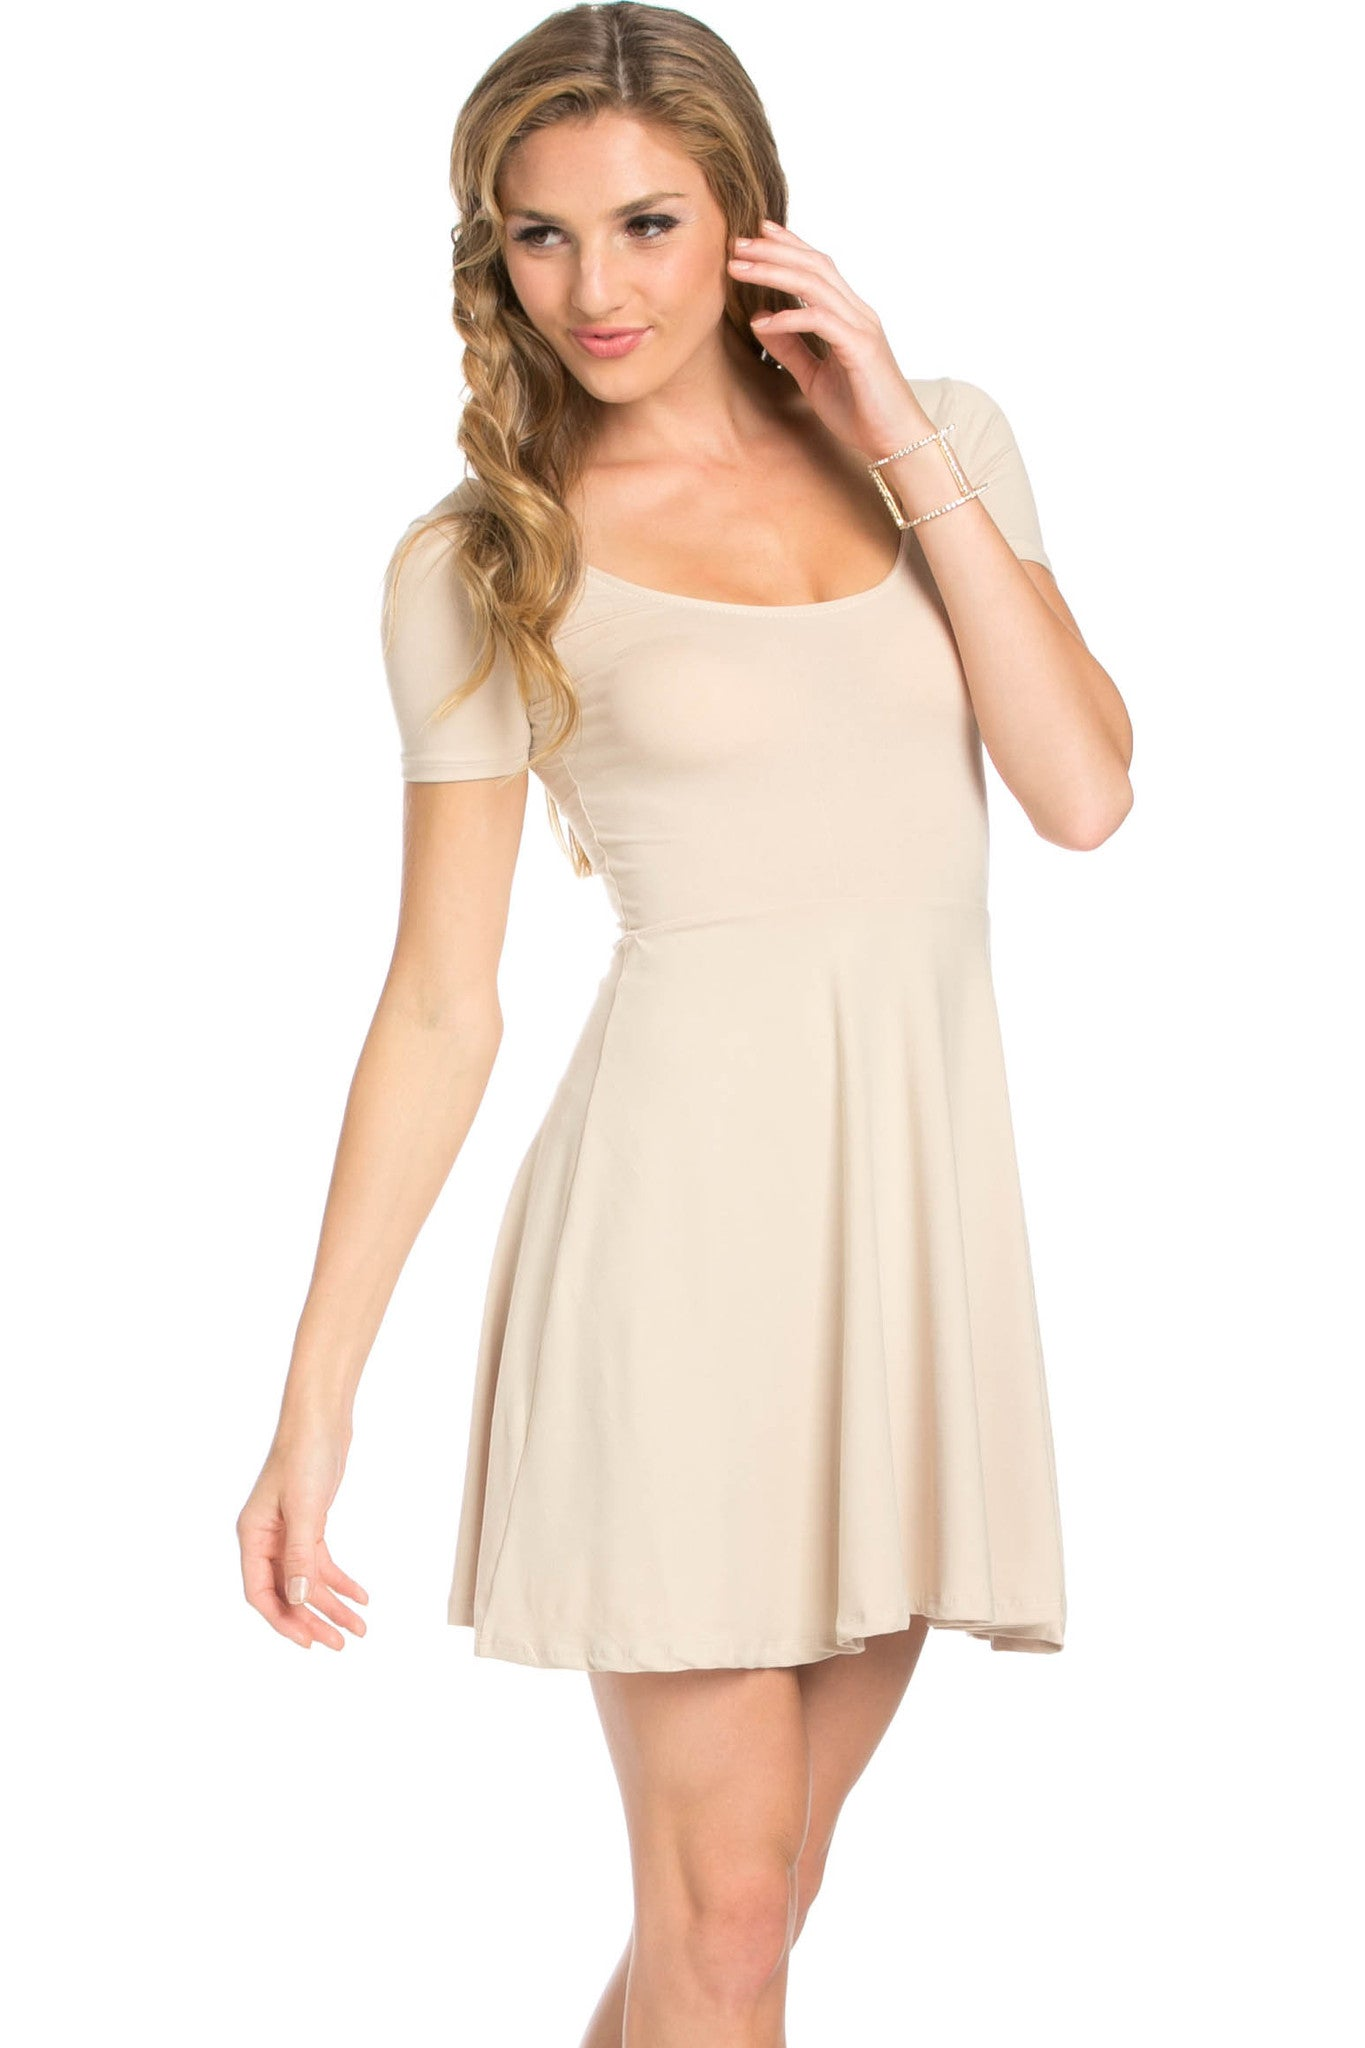 Micro Suede Khaki Mini Dress - Dresses - My Yuccie - 2